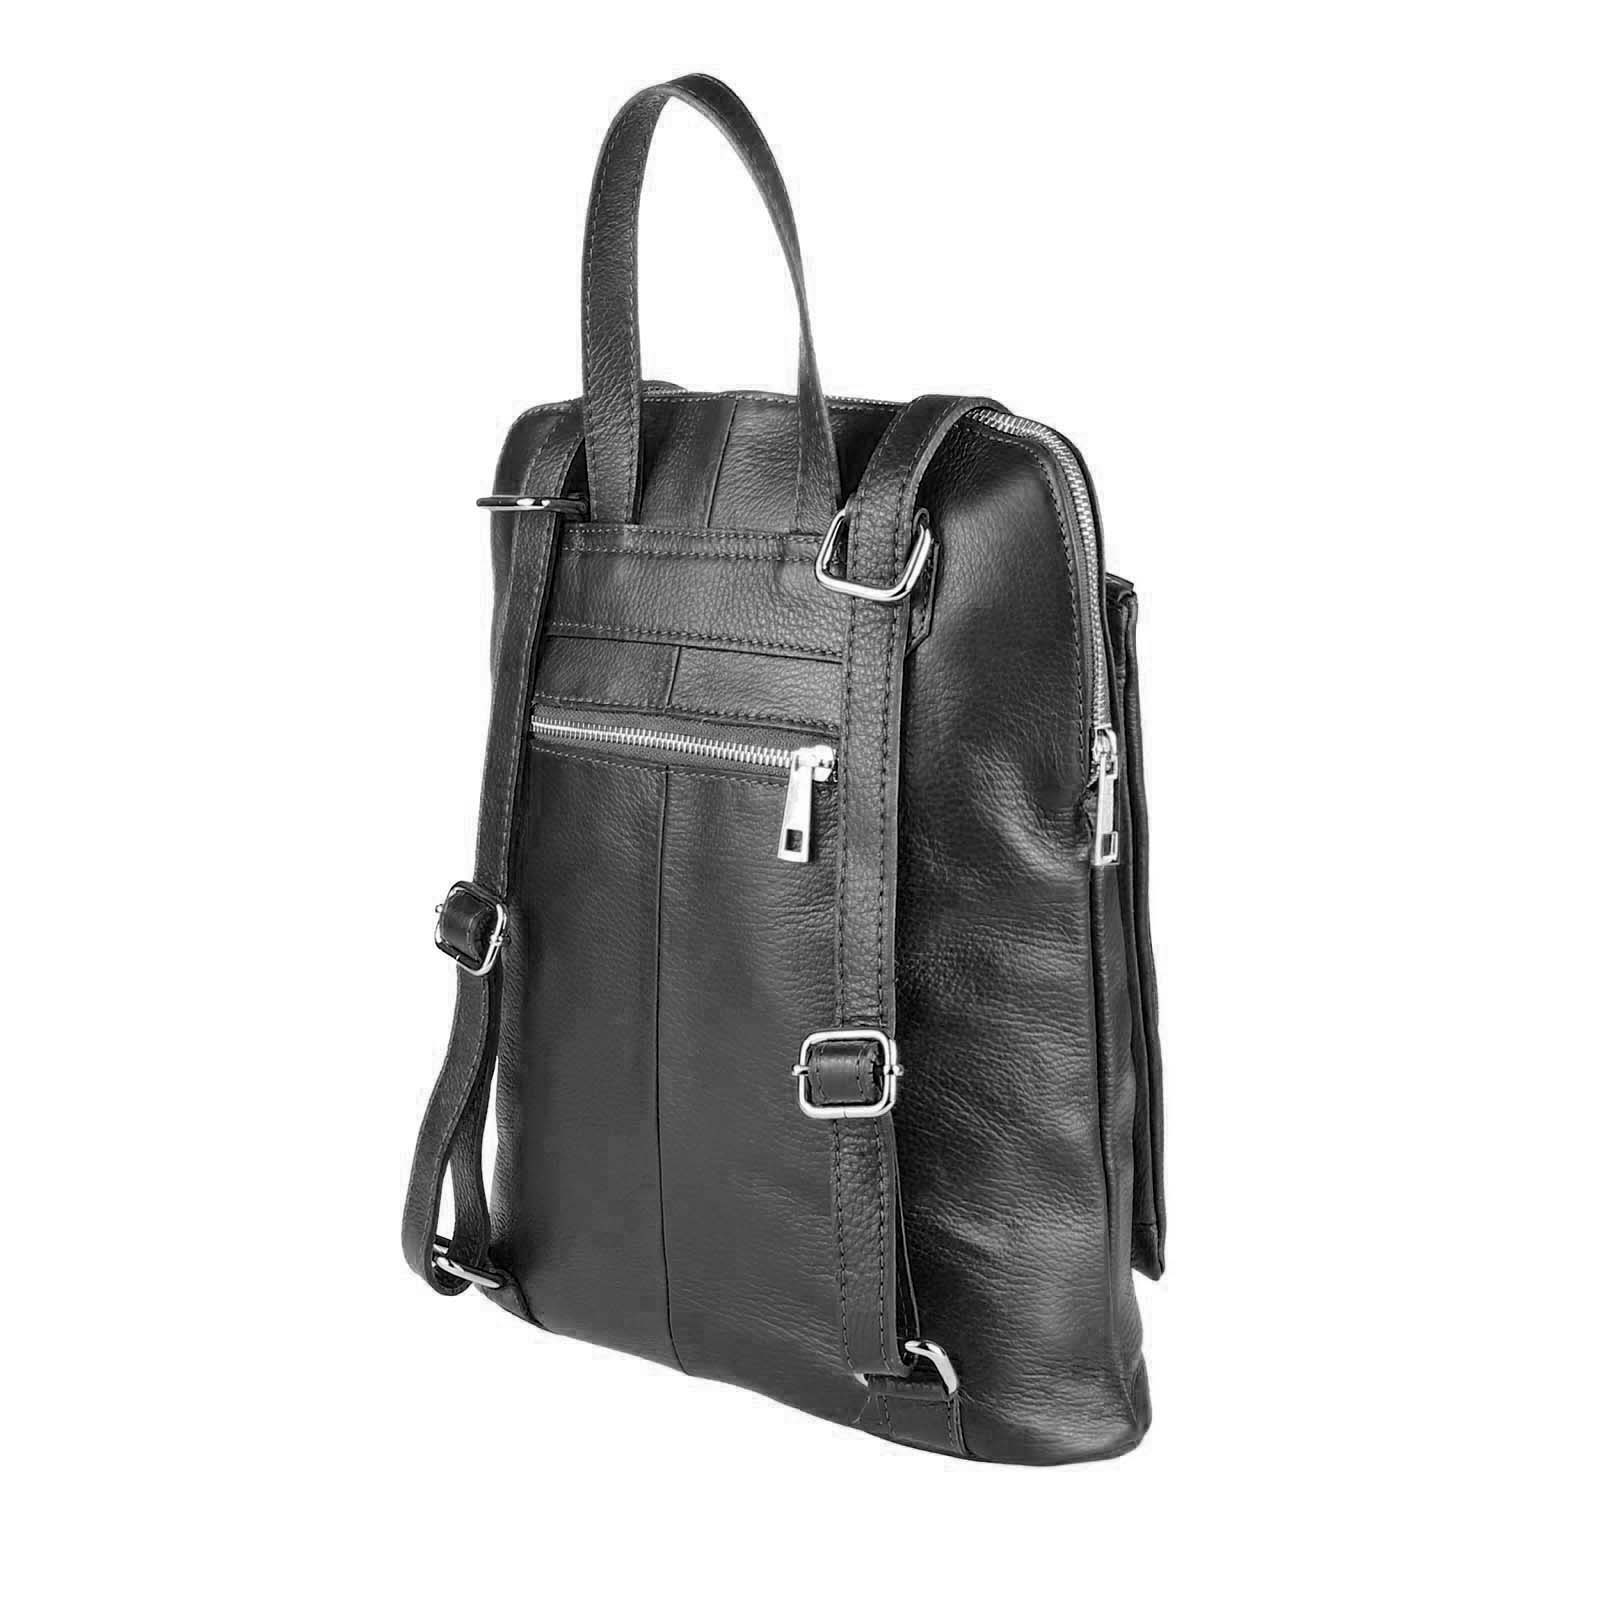 ITALy-DAMEN-LEDER-Reise-RUCKSACK-SchulterTasche-Shopper-Backpack-Ledertasche-BAG Indexbild 17